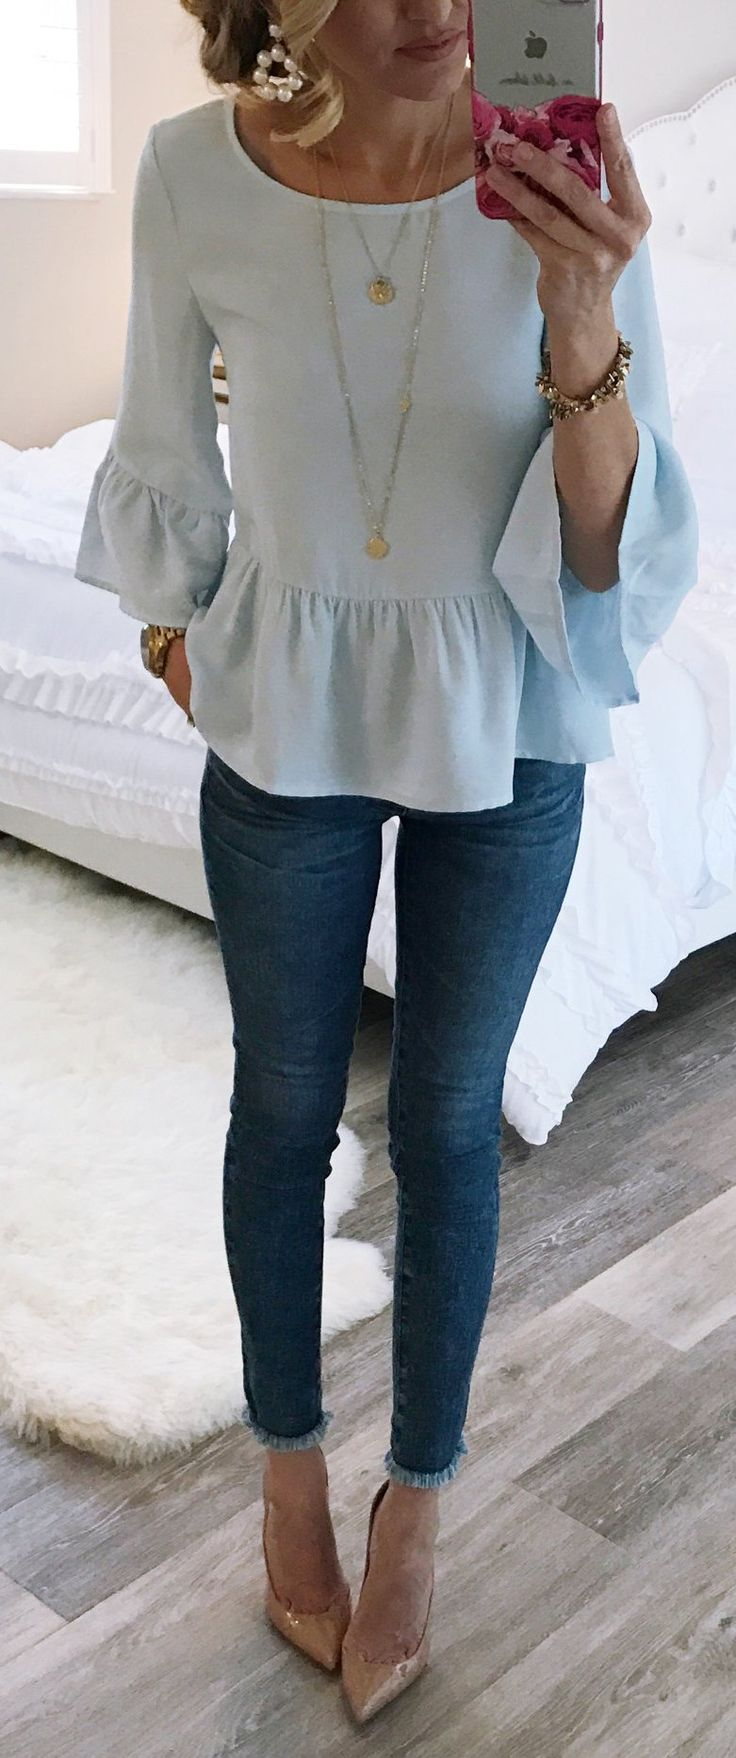 best 25+ bell sleeve top ideas on pinterest | bell sleeve top